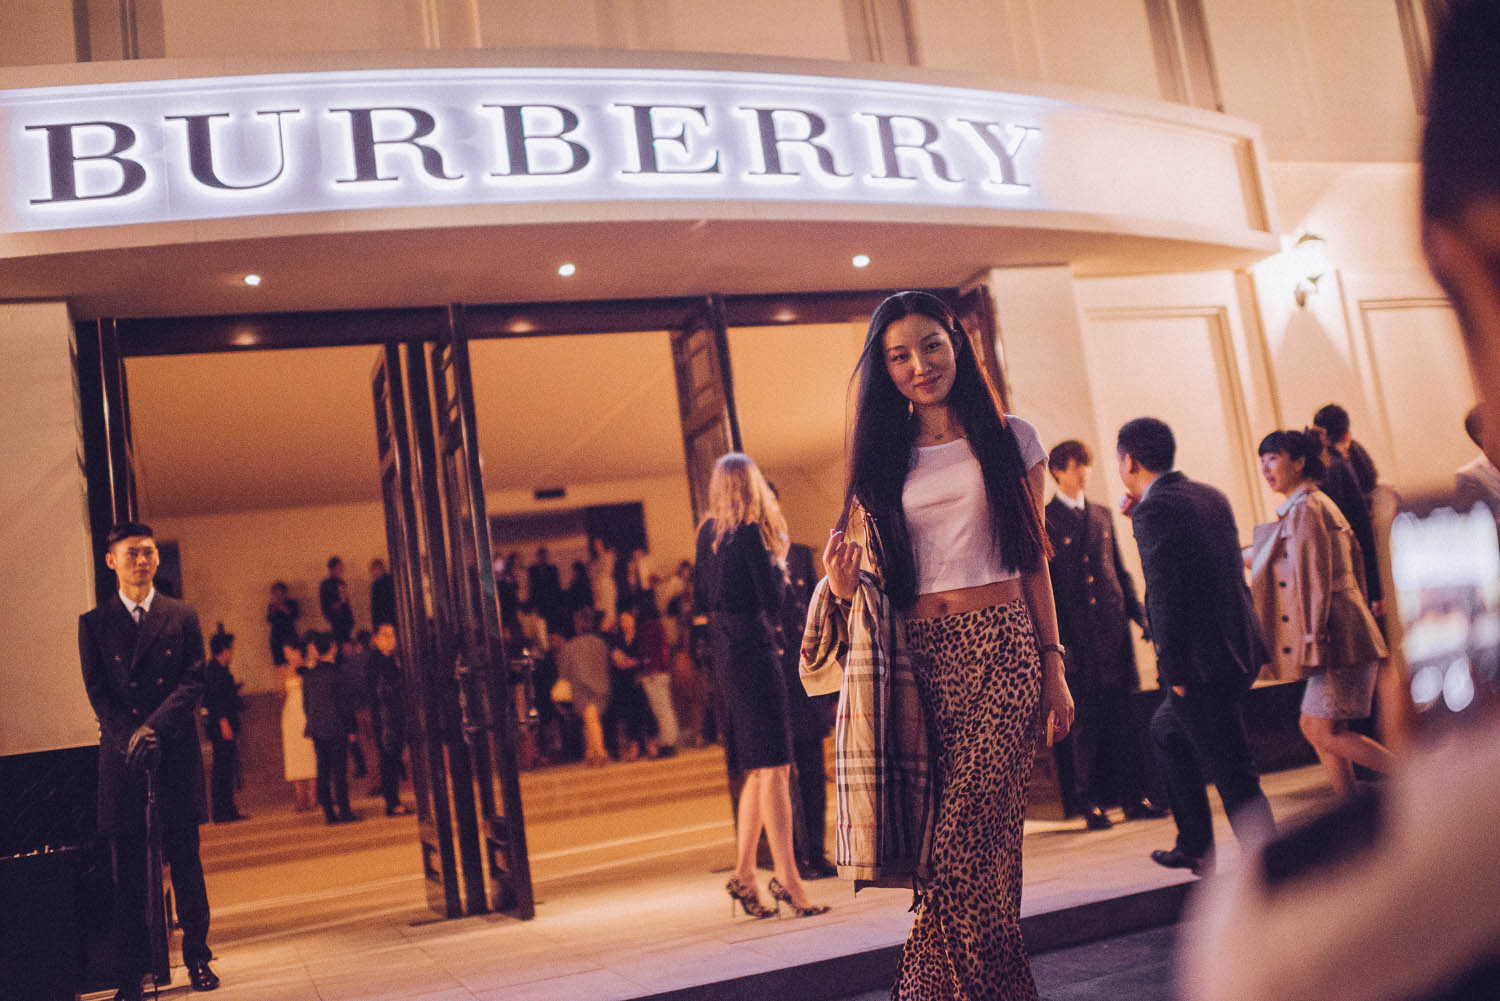 Burberry-London-in Shanghai-26.jpg